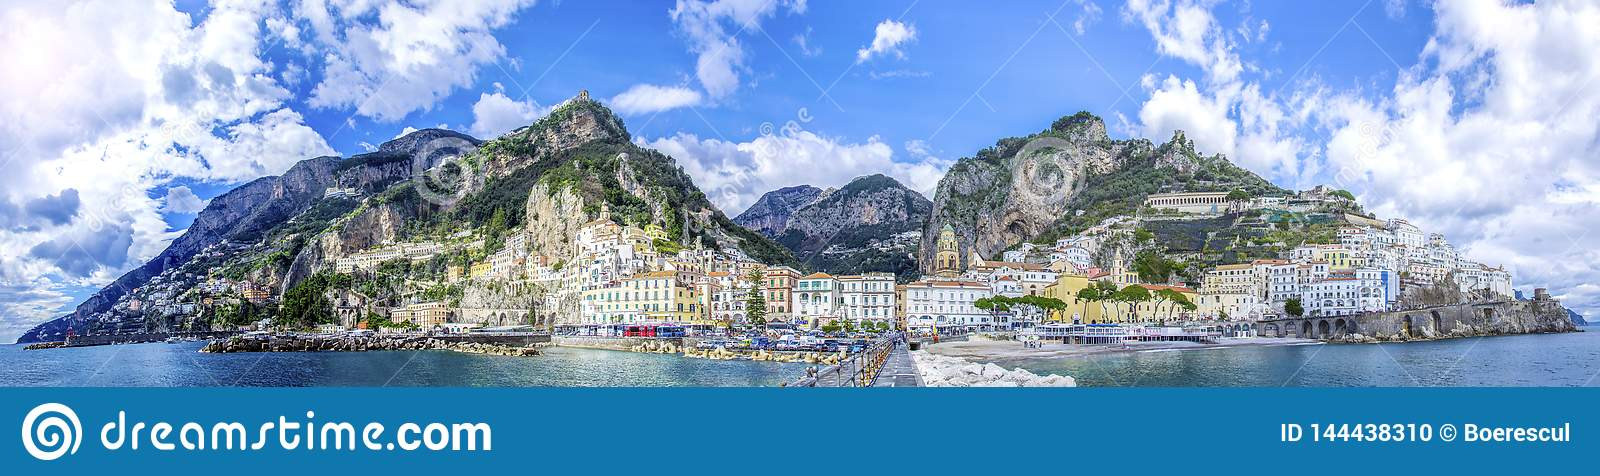 Panoramic view of the town of Amalfi on coast in Italy